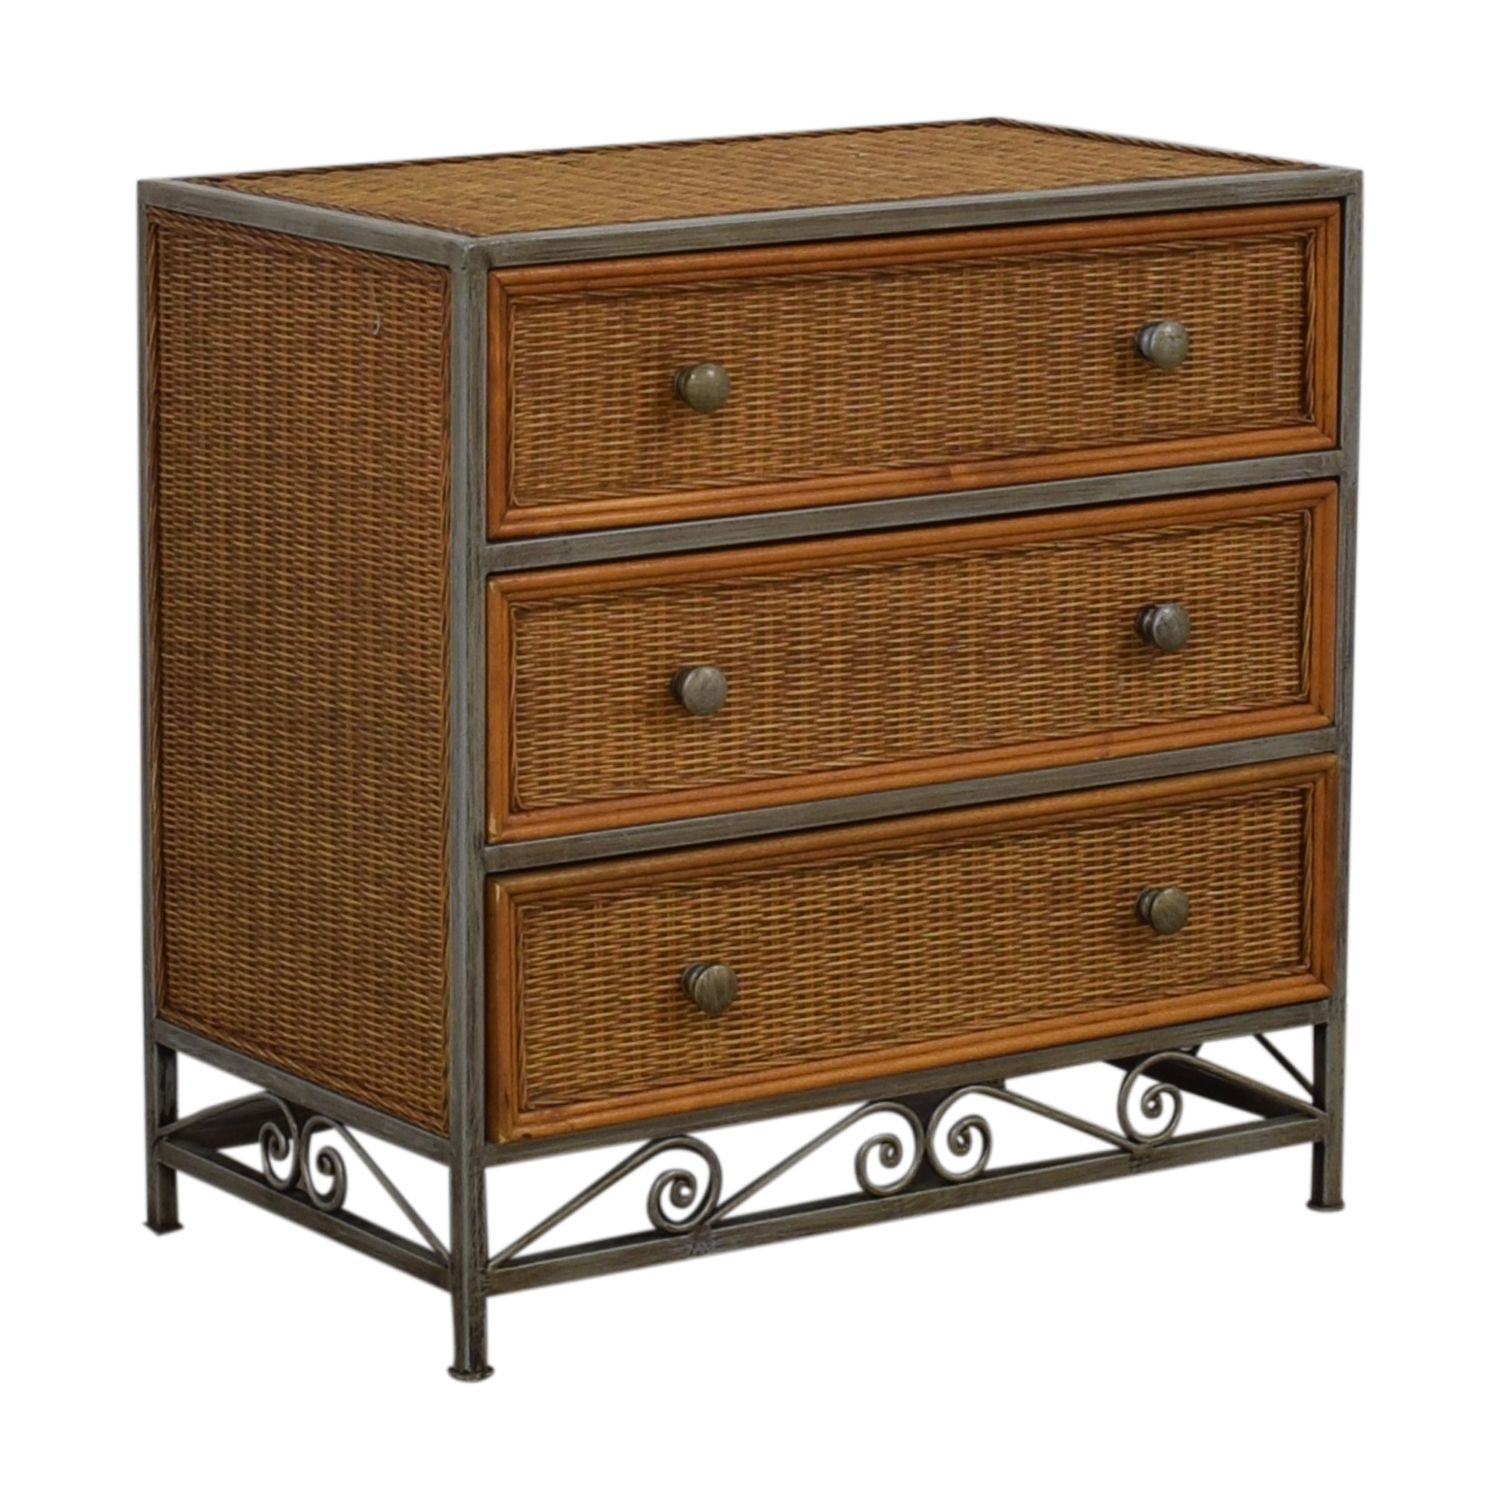 shop Pier 1 Imports Miranda Three-Drawer Wicker Dresser Pier 1 Imports